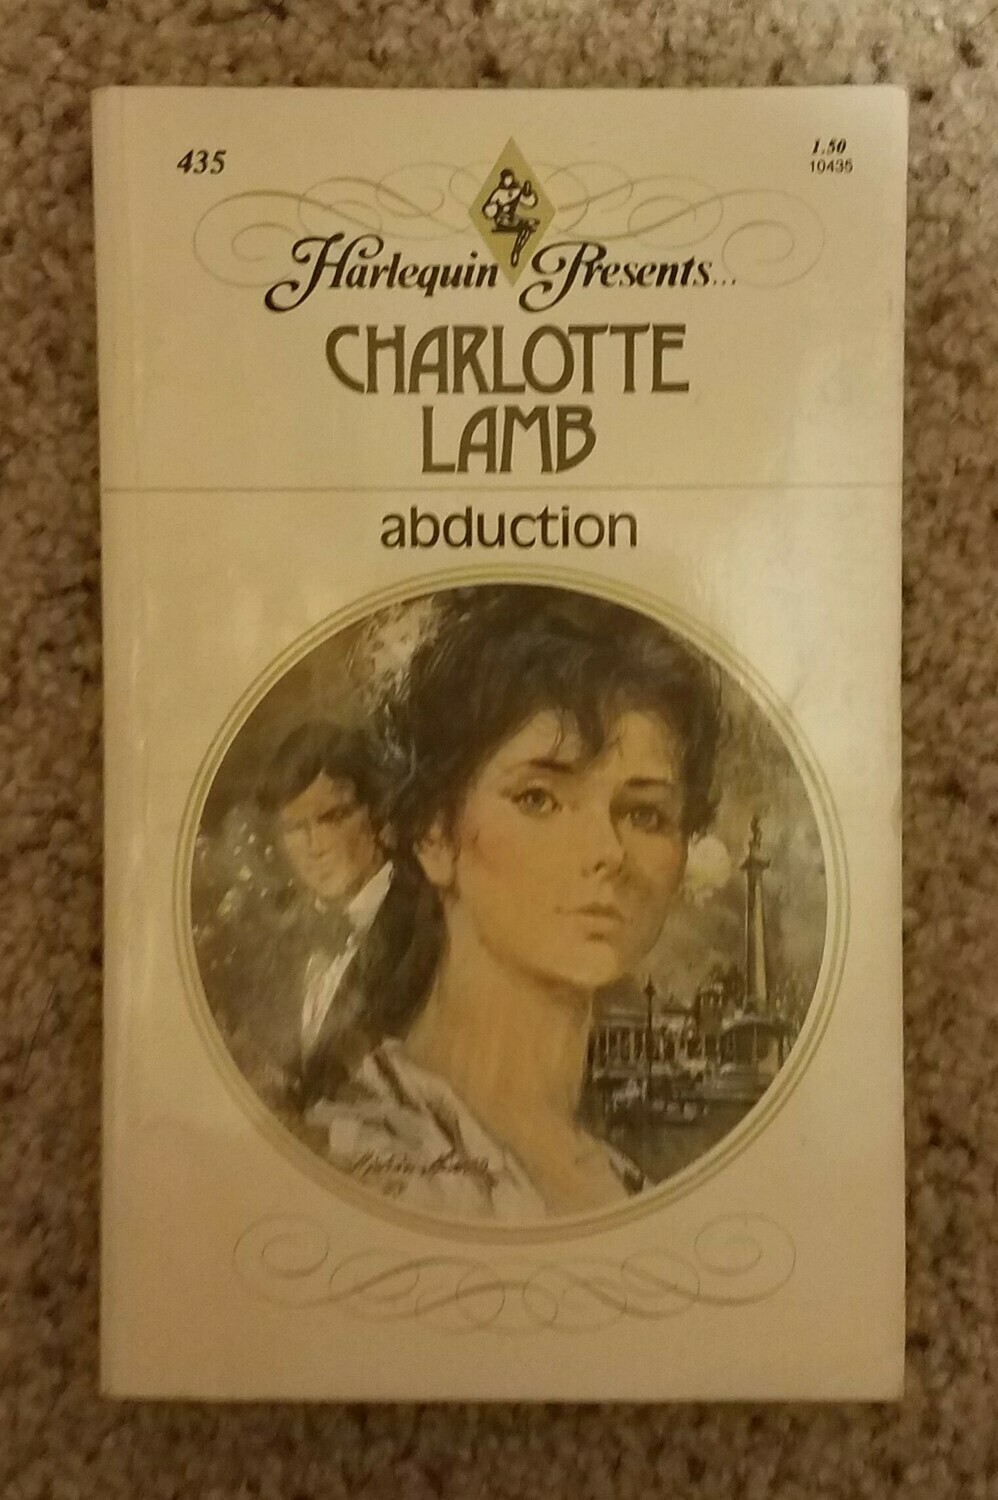 Abduction by Charlotte Lamb